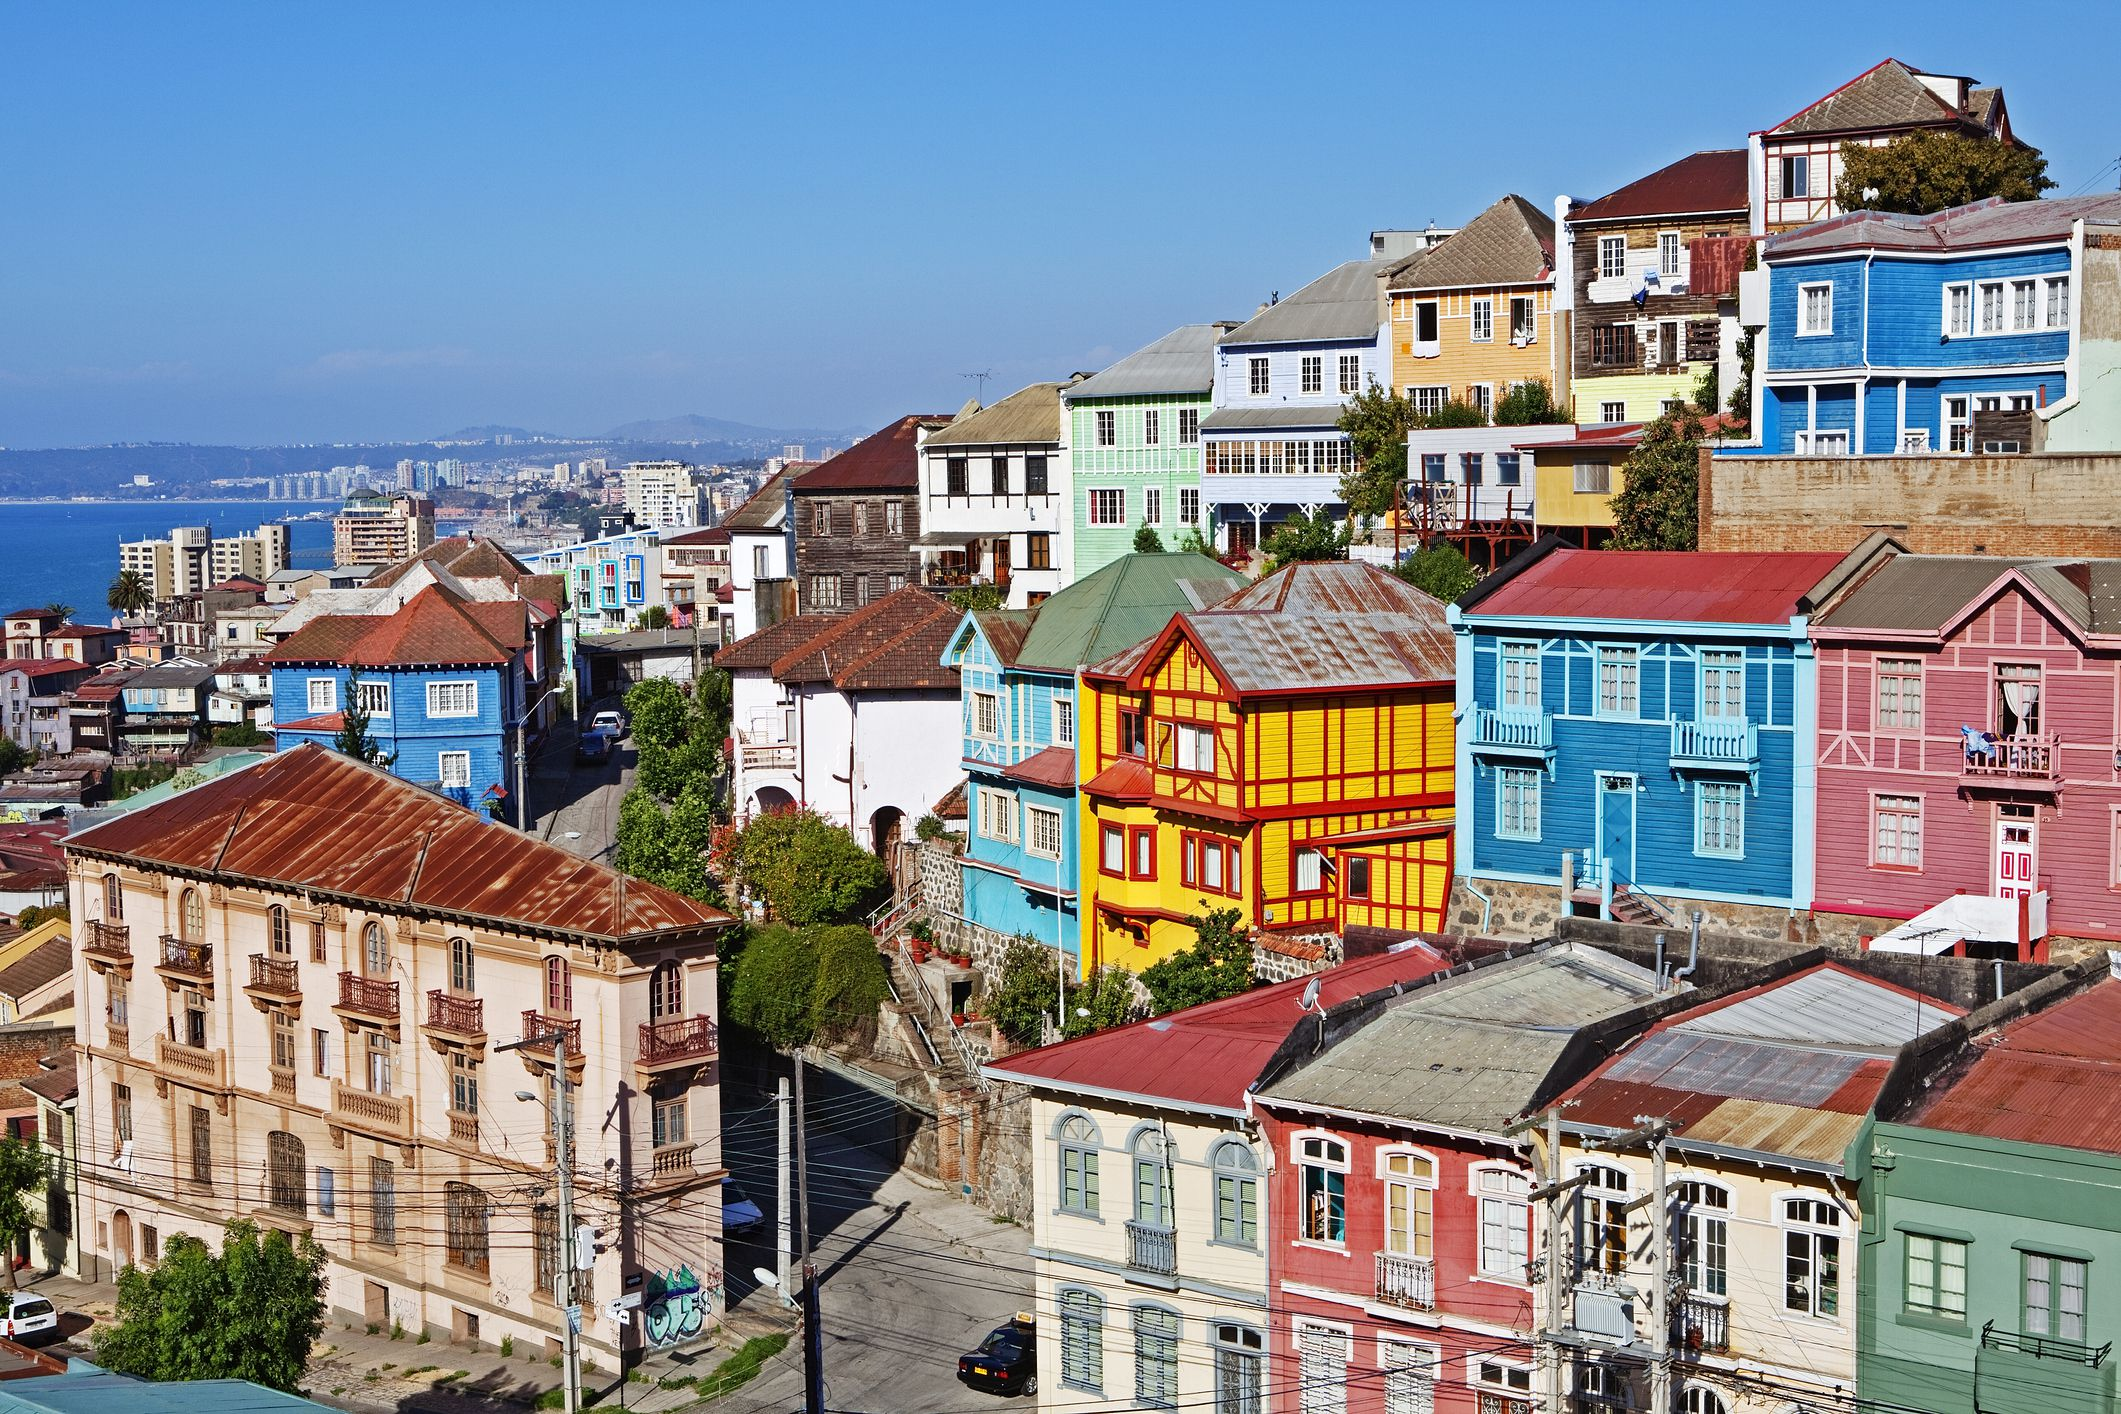 View of colorful buildings, Valparaiso Chile